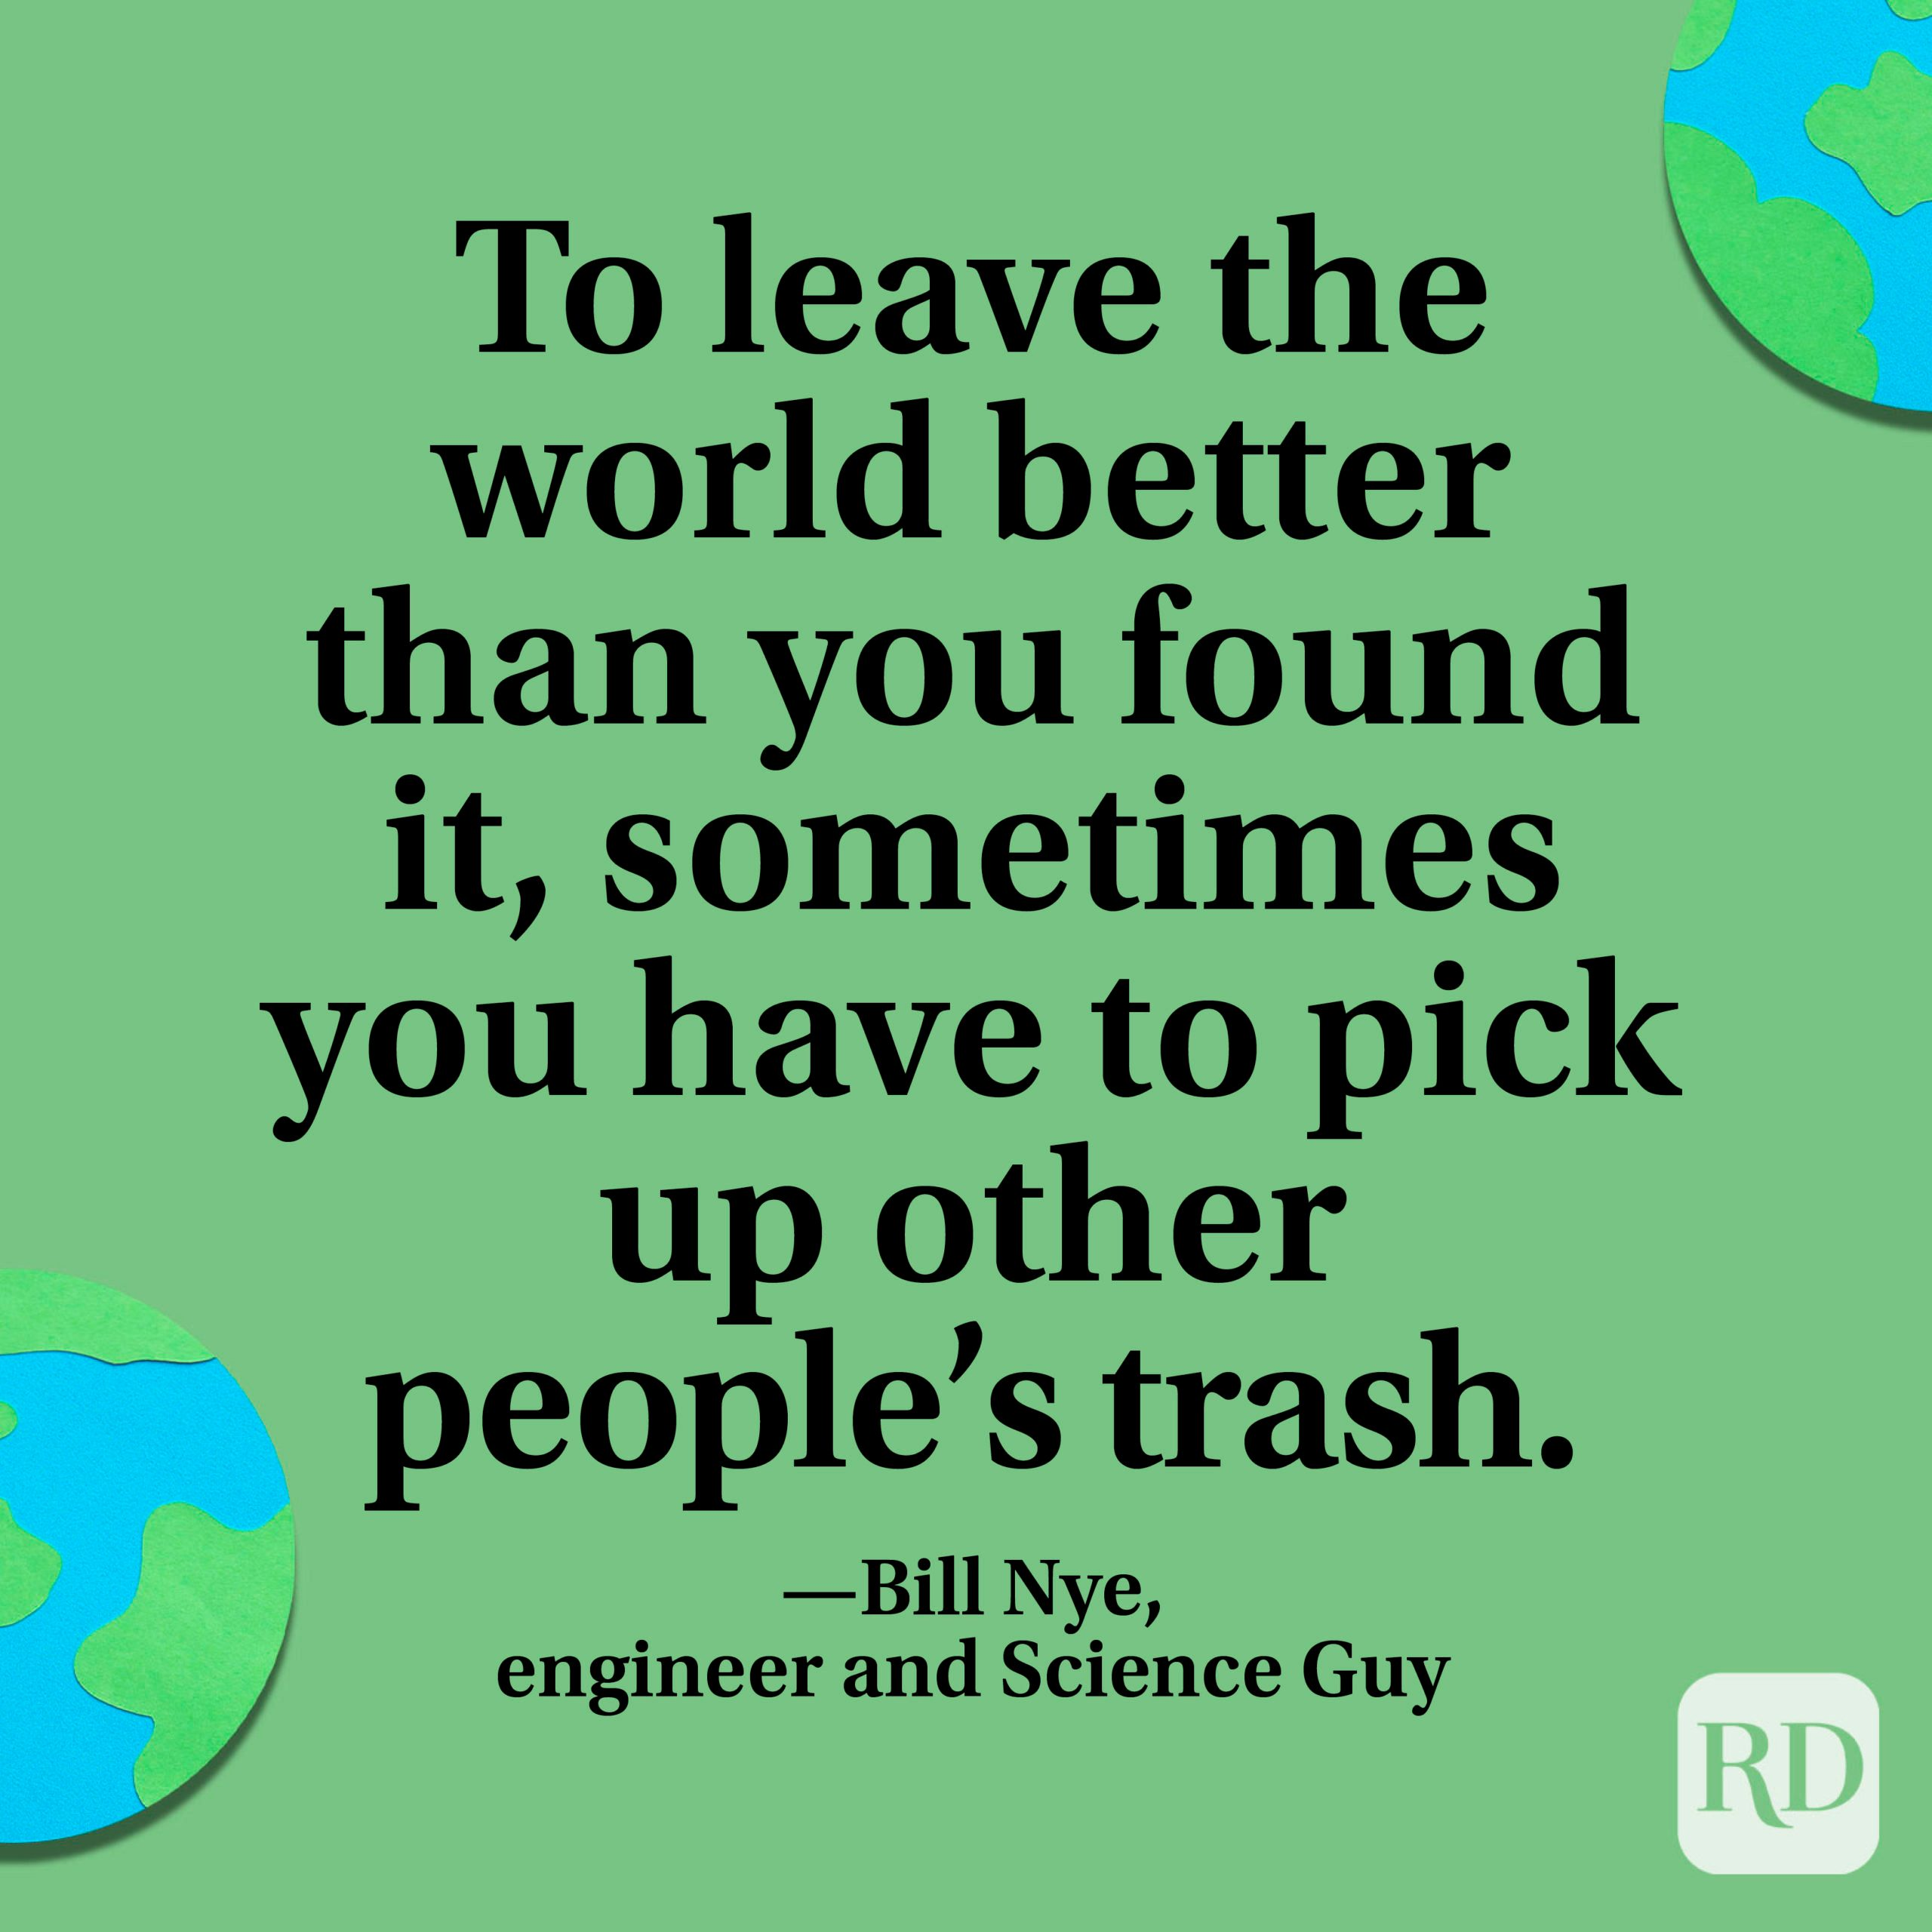 """""""To leave the world better than you found it, sometimes you have to pick up other people's trash."""" —Bill Nye, engineer and Science Guy"""